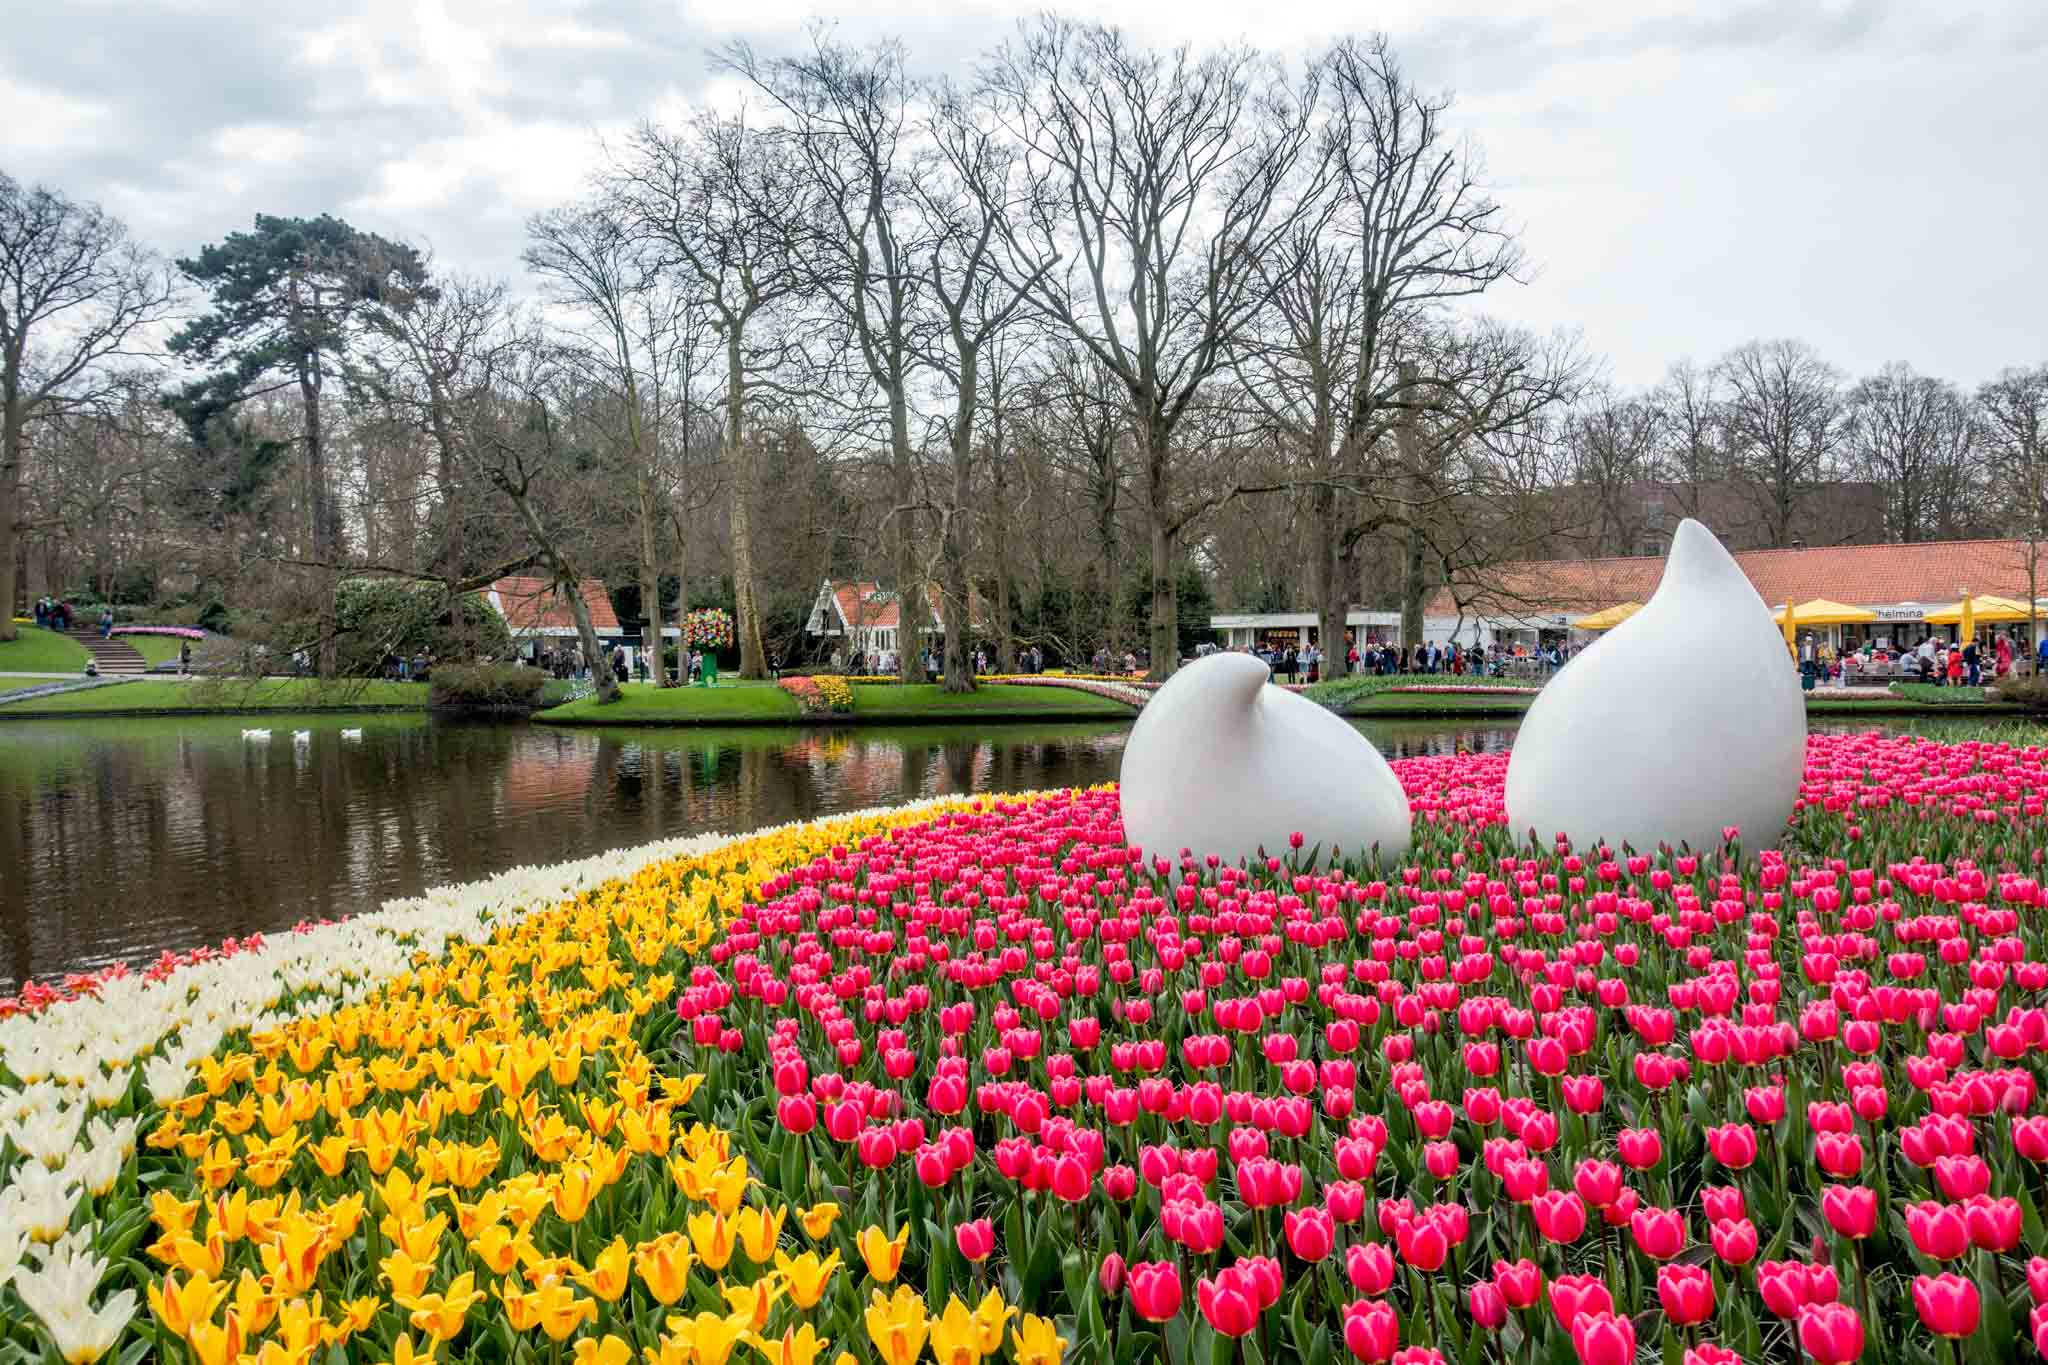 Sculpture surrounded by tulips